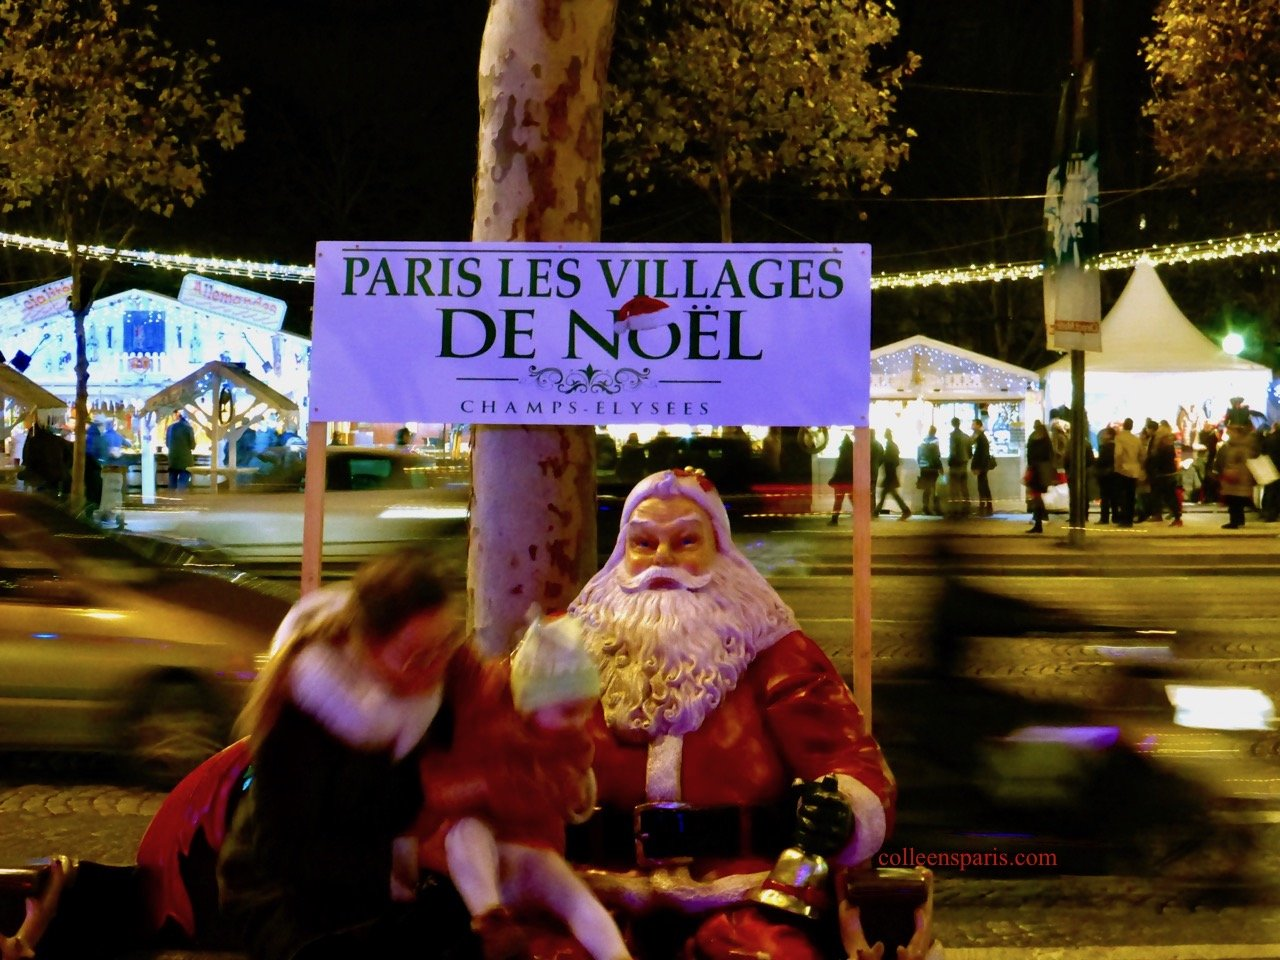 pere noel champs elysees 2018 Champs Elysées Christmas Market No MoreColleen's Paris | Colleen's  pere noel champs elysees 2018